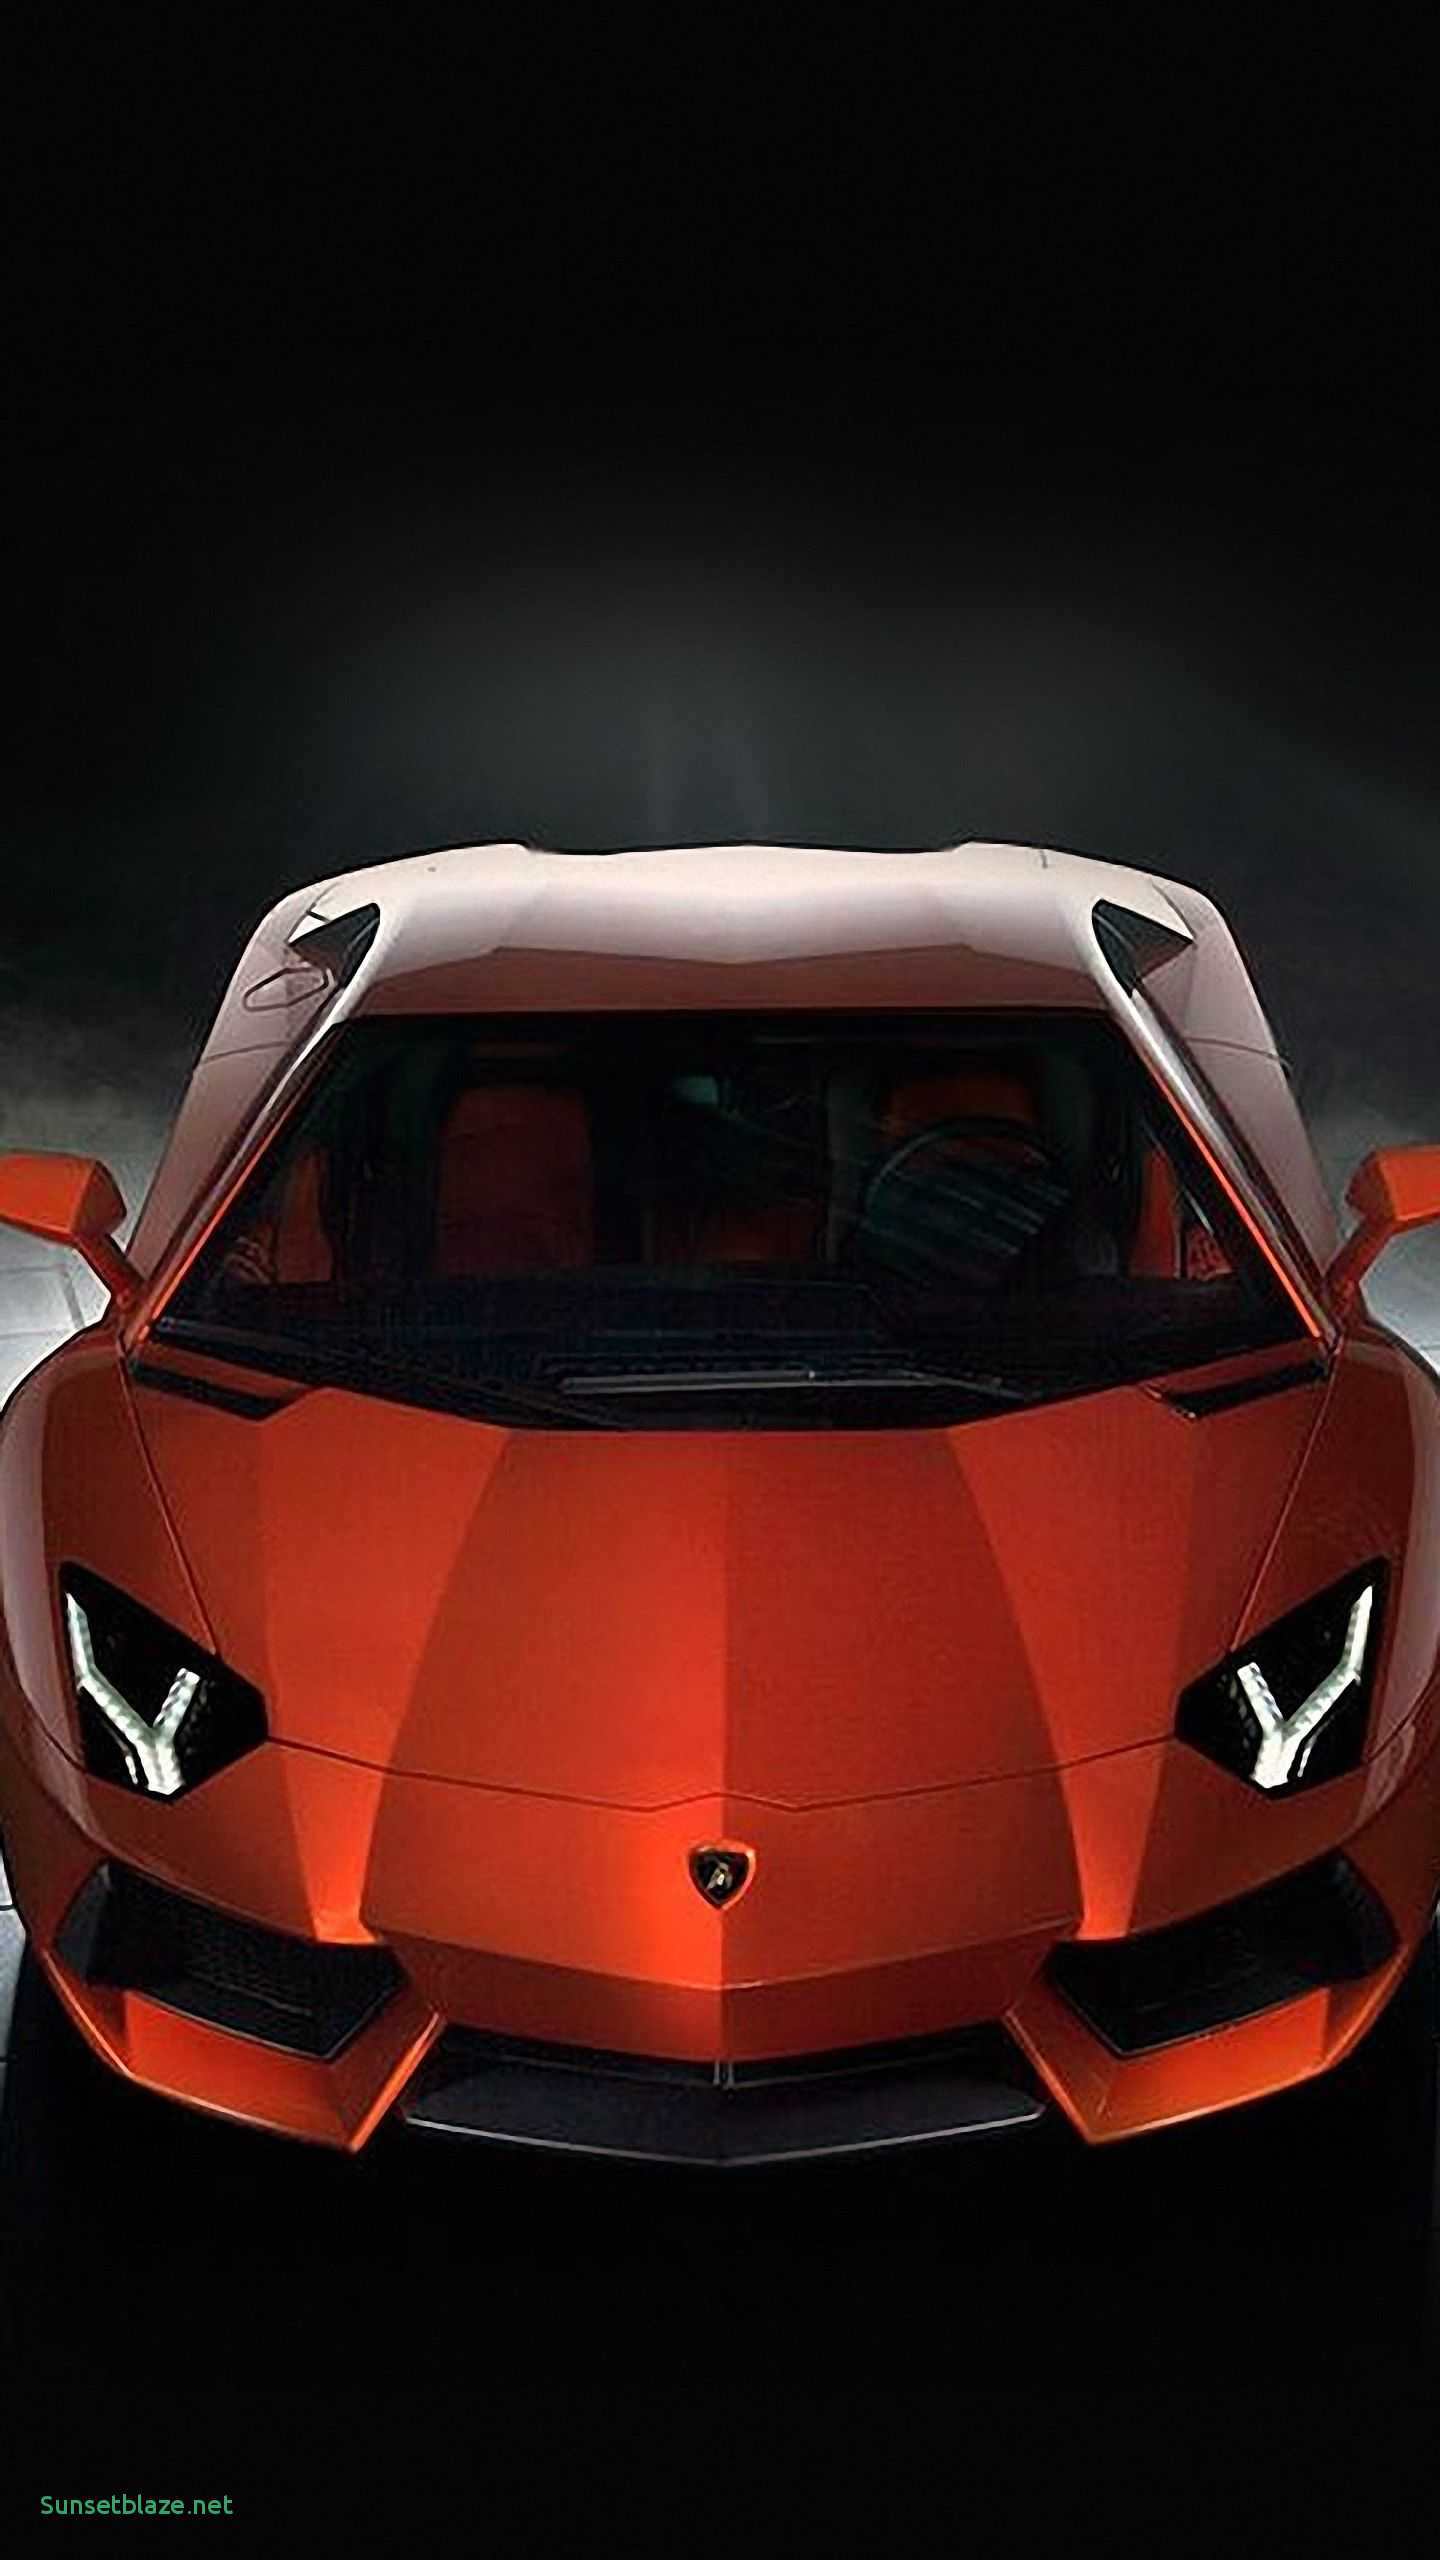 Best Cars Mobile Wallpapers Wallpaper Cave